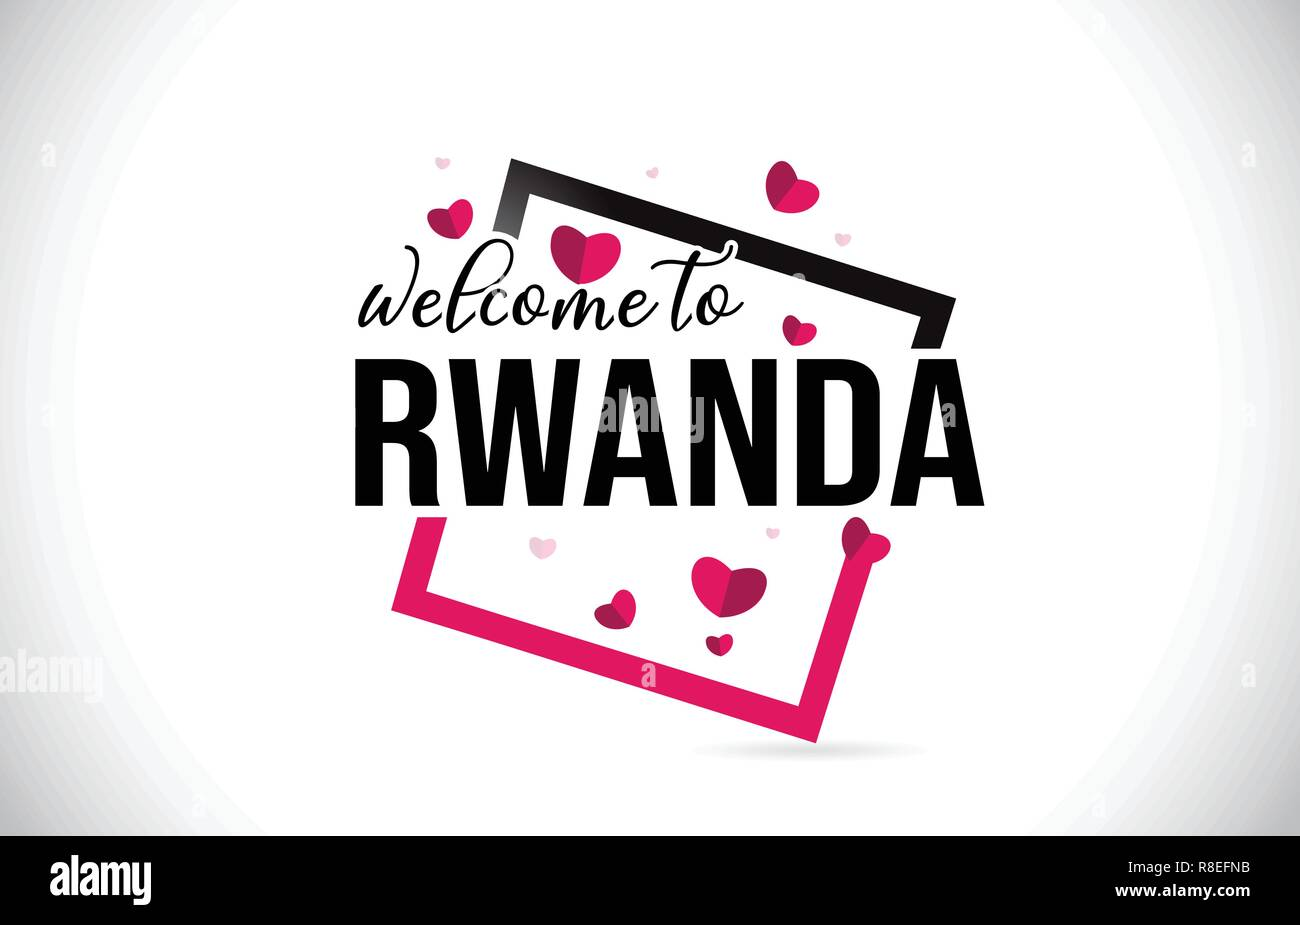 Rwanda Welcome To Word Text with Handwritten Font and  Red Hearts Square Design Illustration Vector. - Stock Vector